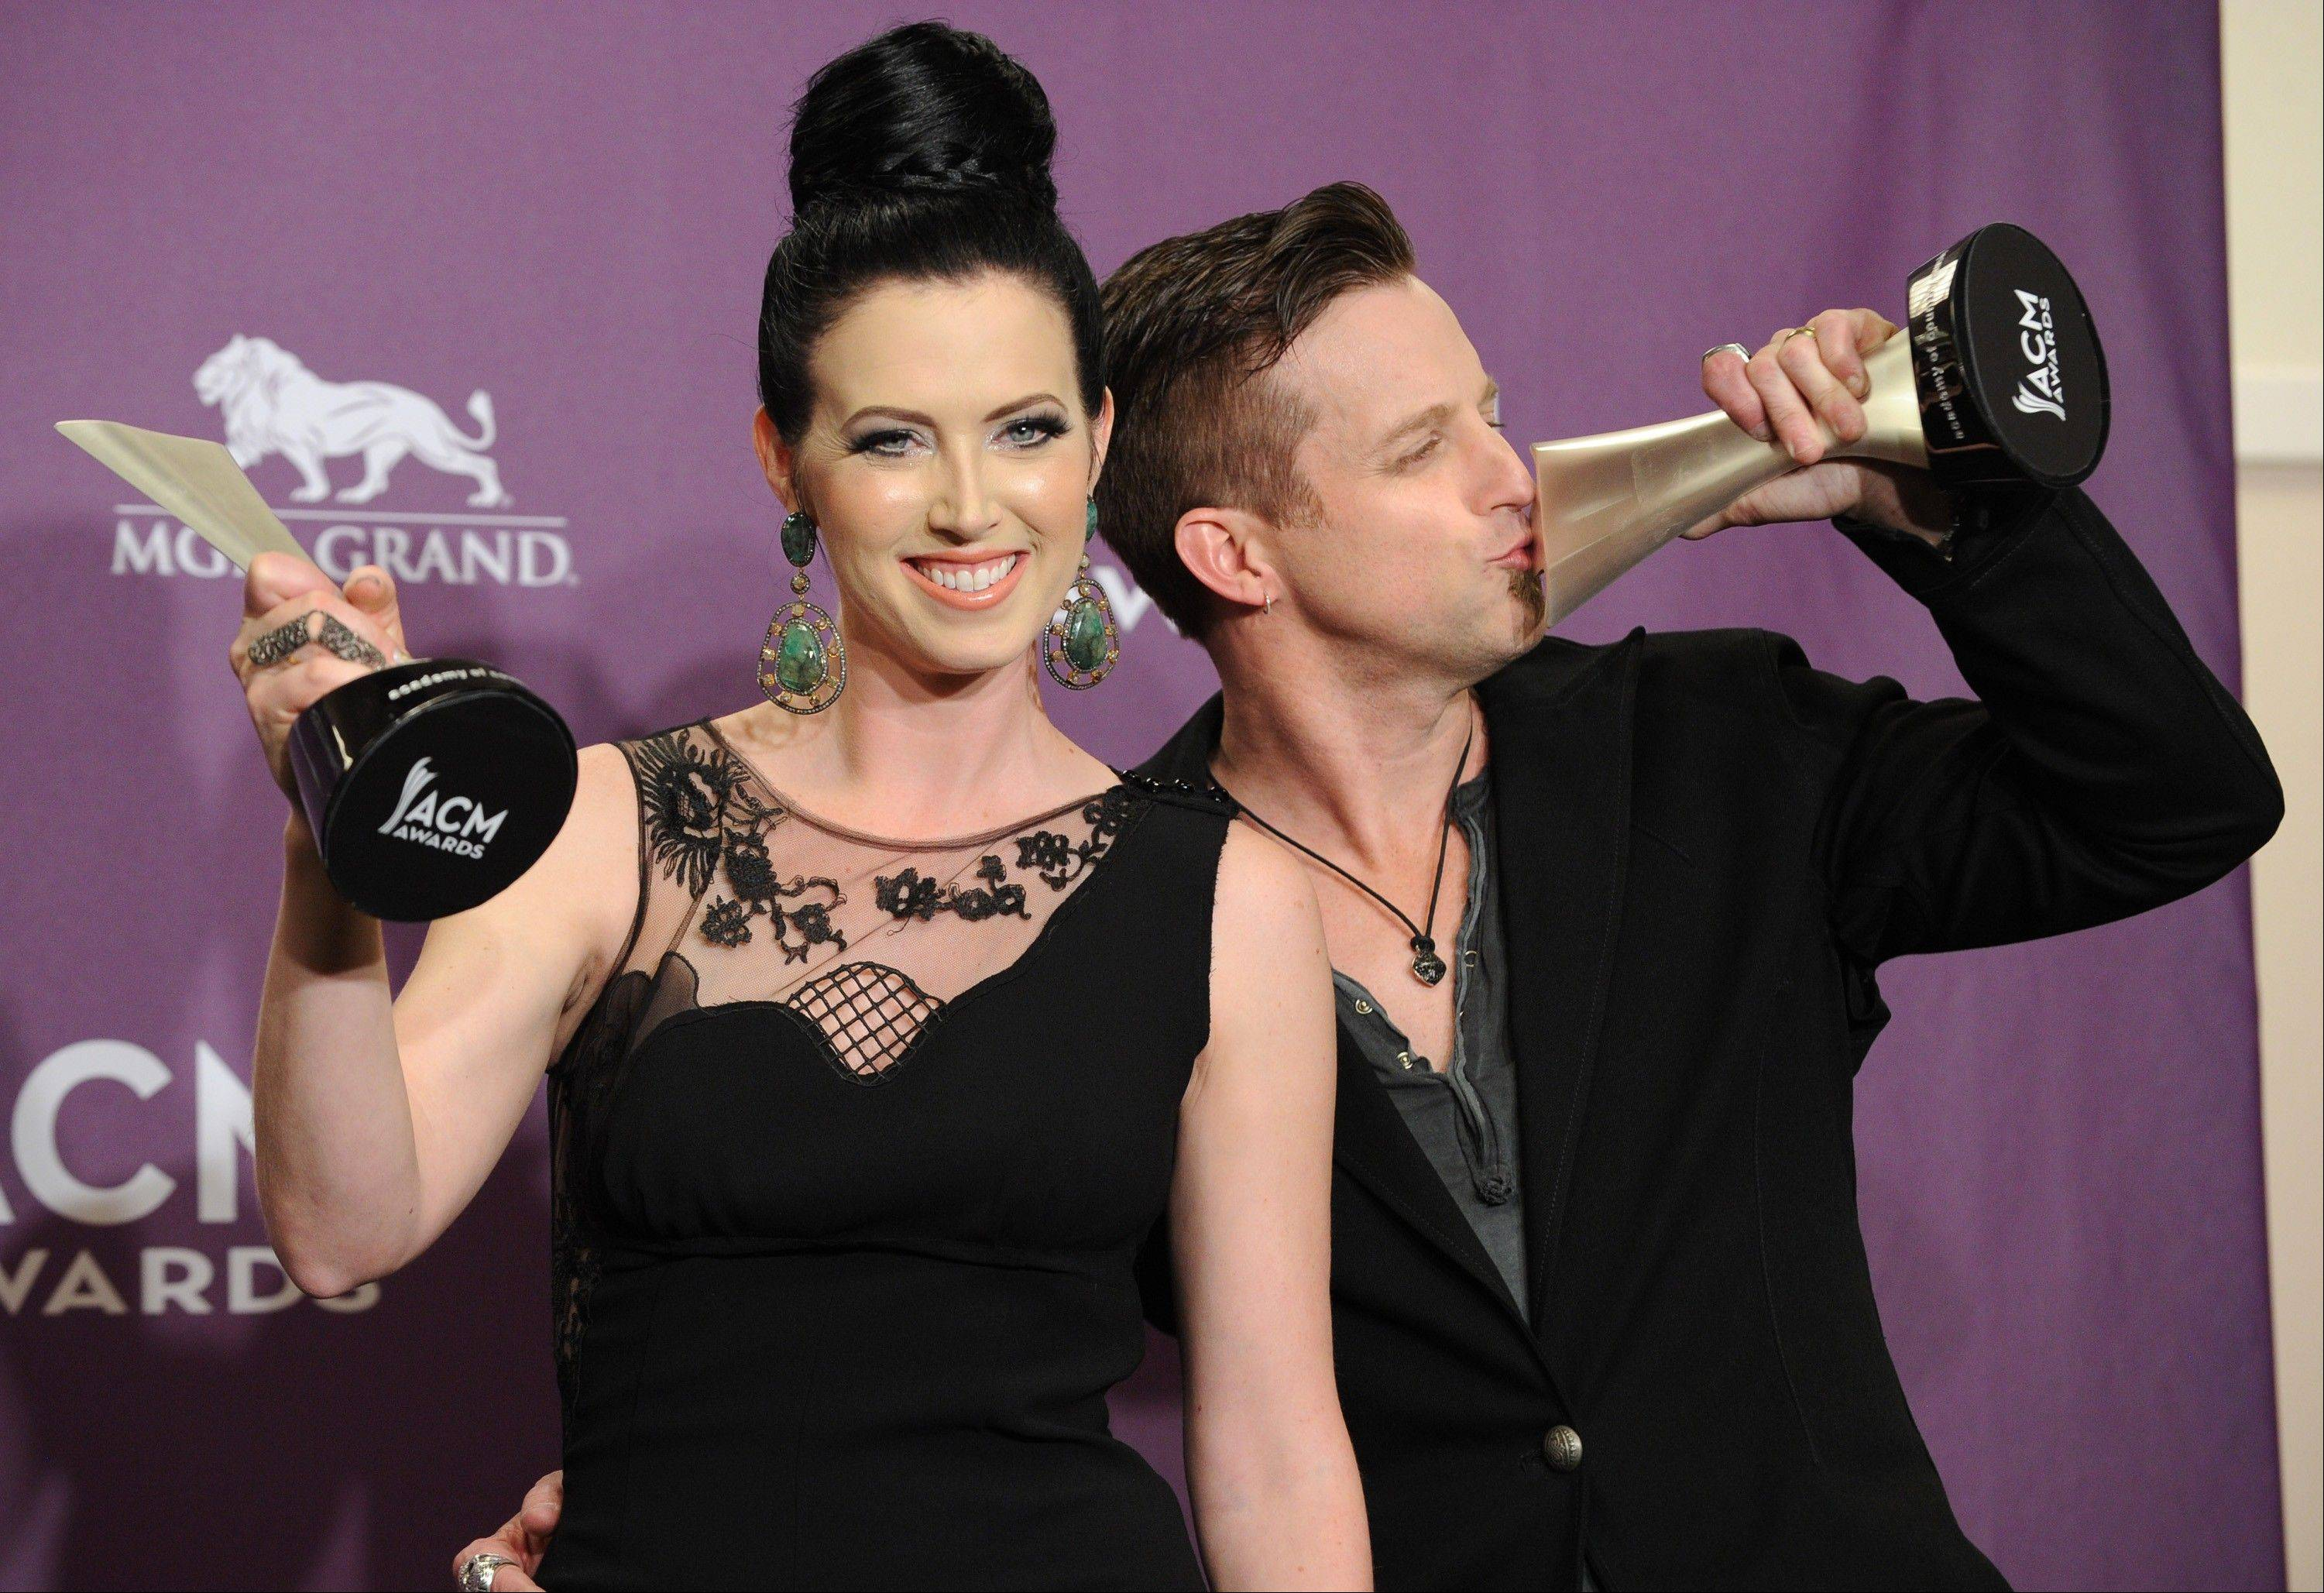 Shawna Thompson, left, and Keifer Thompson, of Thompson Square, pose backstage with the award for vocal duo of the year at the 48th Annual Academy of Country Music Awards at the MGM Grand Garden Arena in Las Vegas on April 7, 2013.